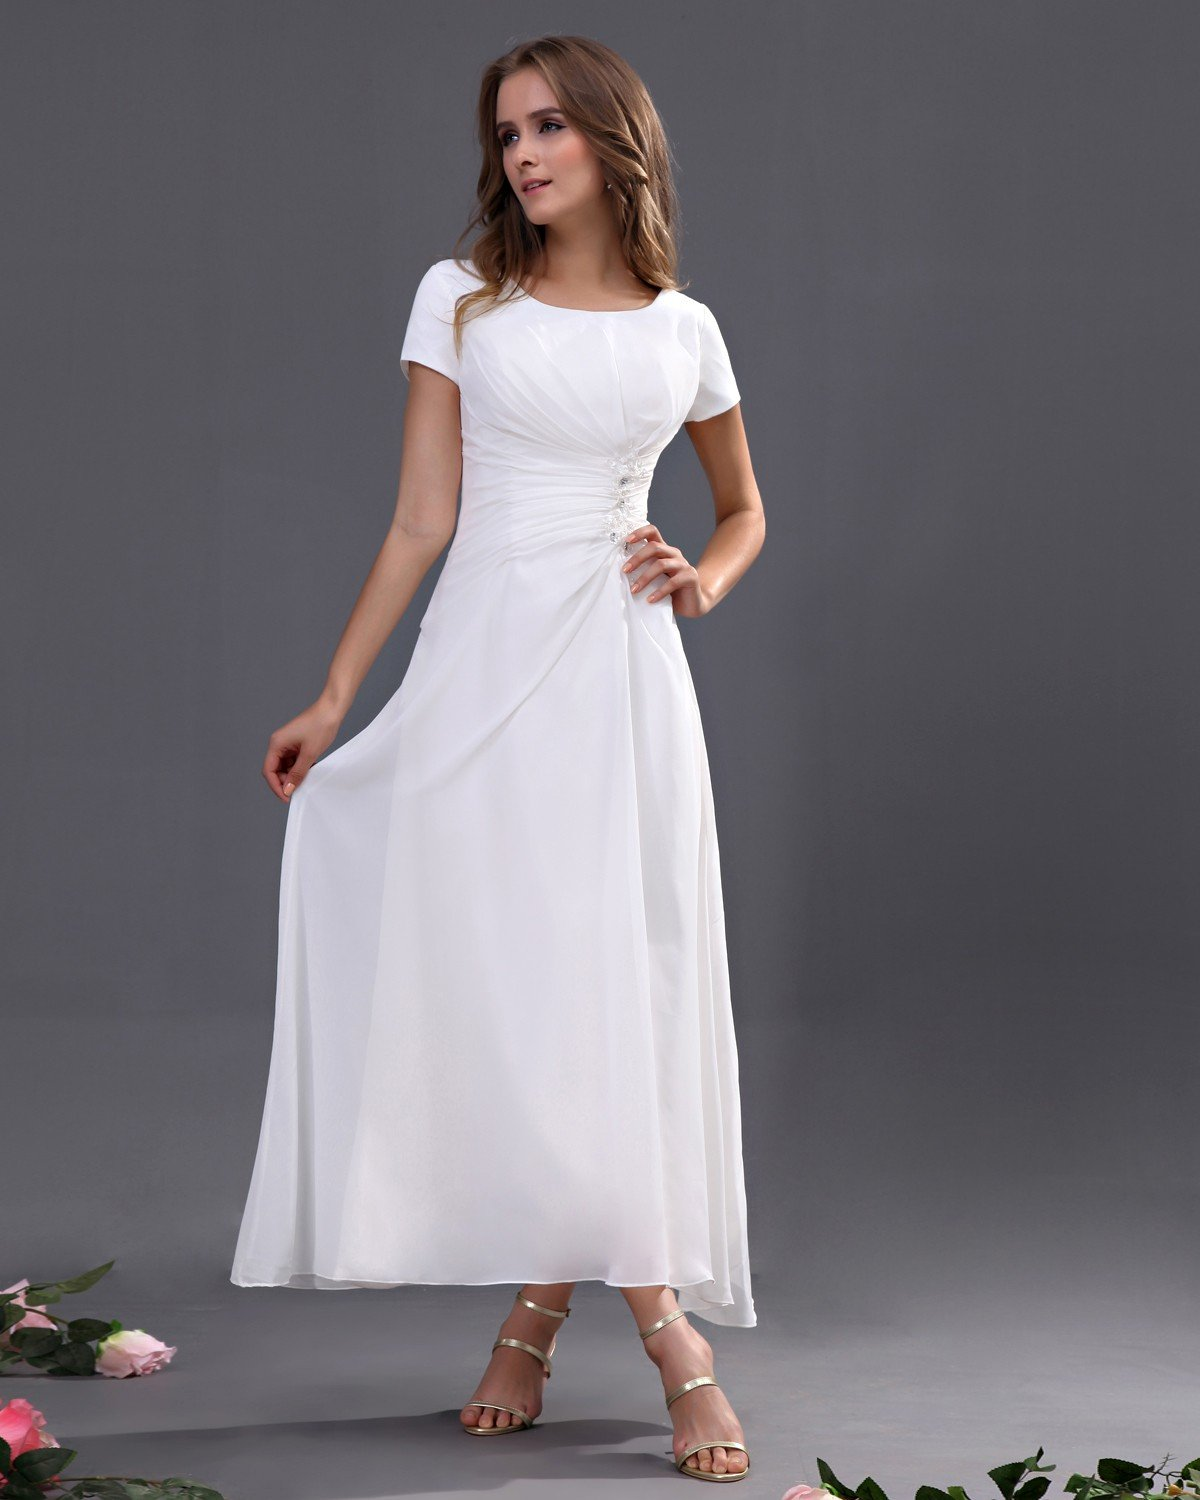 A Line Scoop Ankle Length Chiffon Long Bridesmaid Dresses With Short Sleeves Bridesmaid Dresses Long Chiffon Short Wedding Dress White Bridesmaid Dresses [ 1500 x 1200 Pixel ]